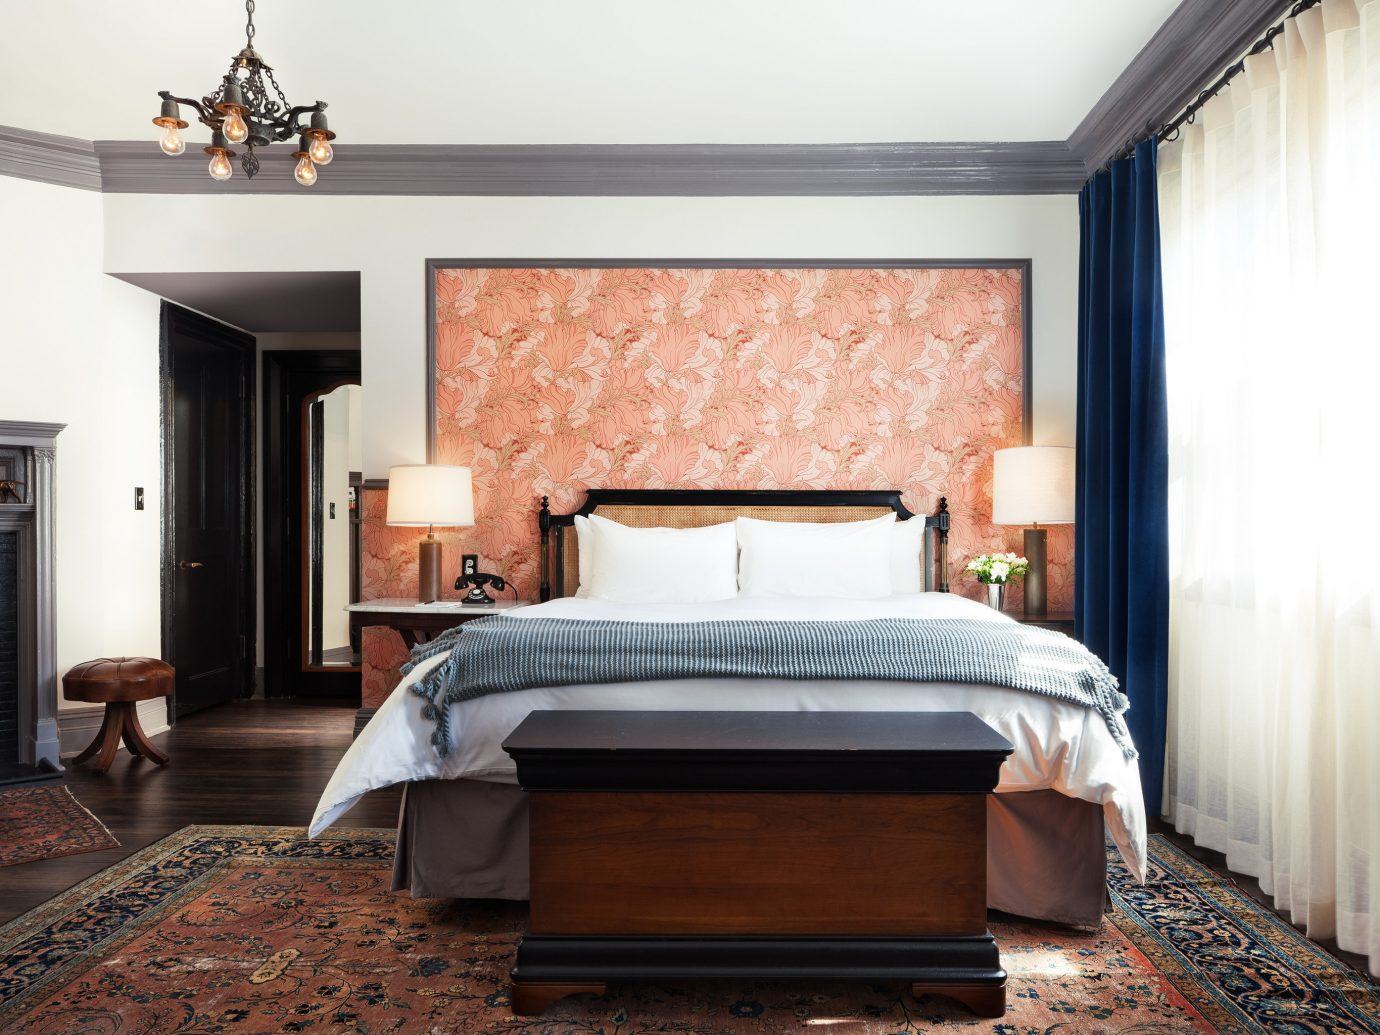 Boutique Hotels Hotels Luxury Travel Romance Romantic Hotels Trip Ideas Winter indoor Living room floor wall sofa Fireplace bed frame Bedroom window interior design ceiling furniture Suite home mattress bed real estate bed sheet window treatment window covering interior designer rug